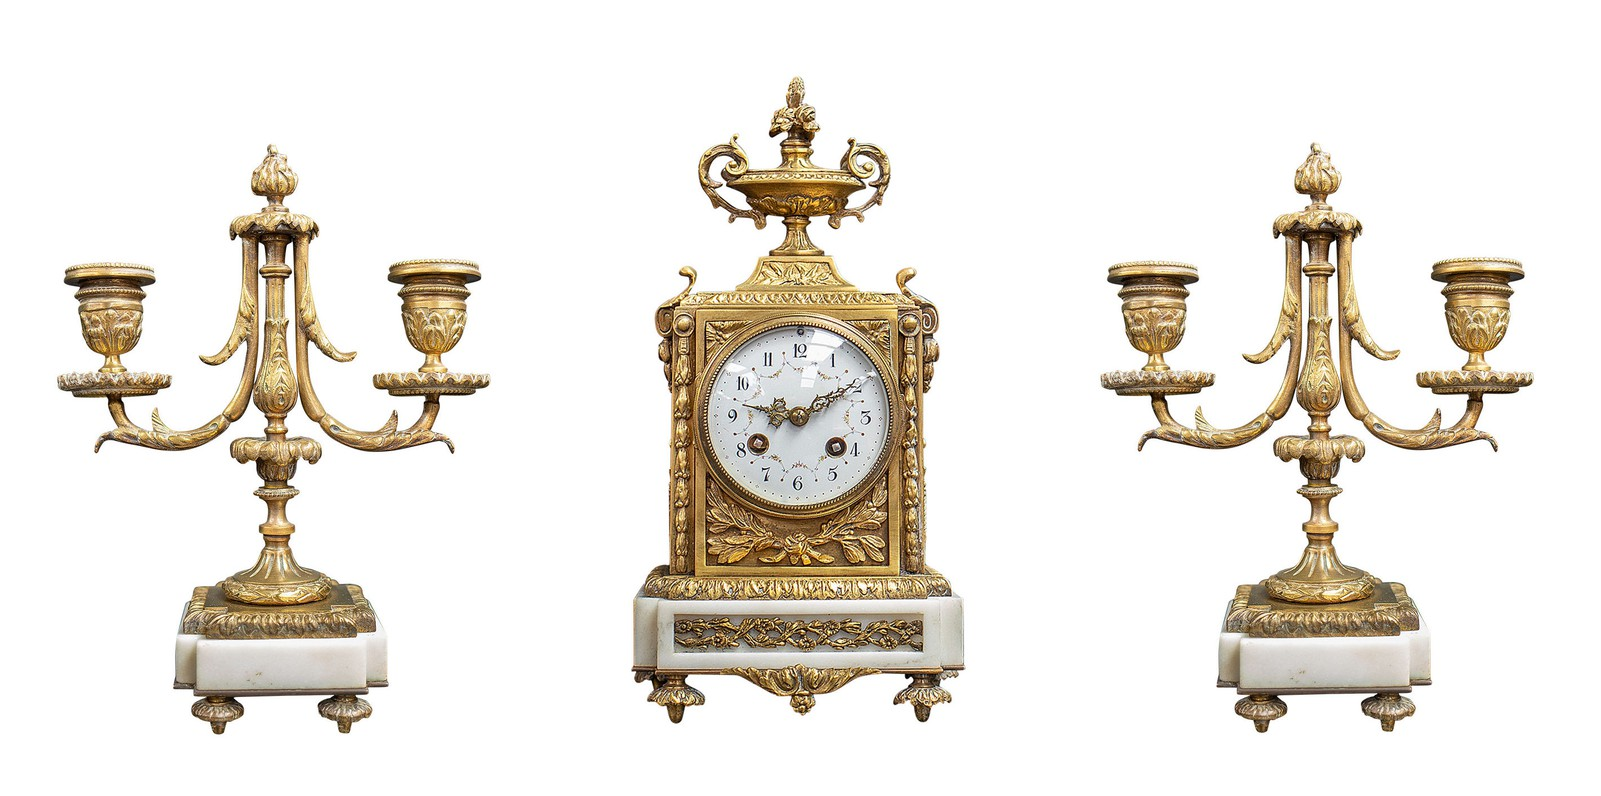 Antique mantel clock and paired candlesticks